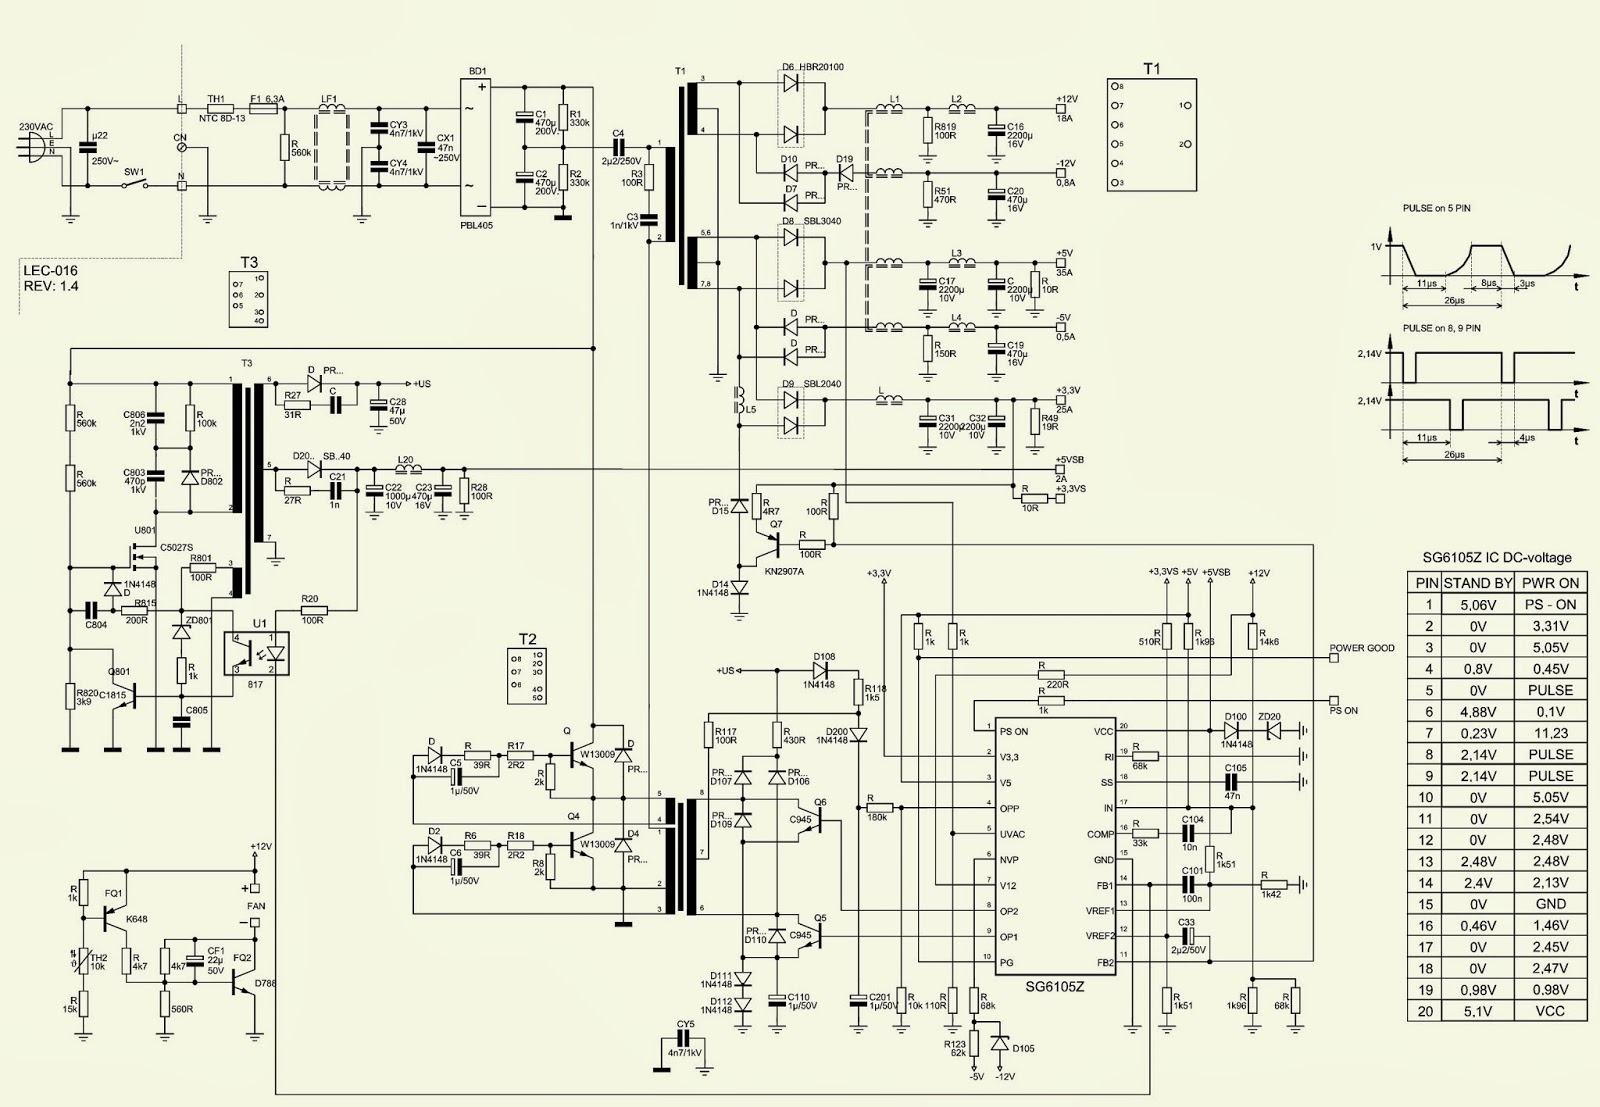 atx power supply wiring diagram 31 wiring diagram images atx psu circuit diagram atx power supply [ 1600 x 1107 Pixel ]